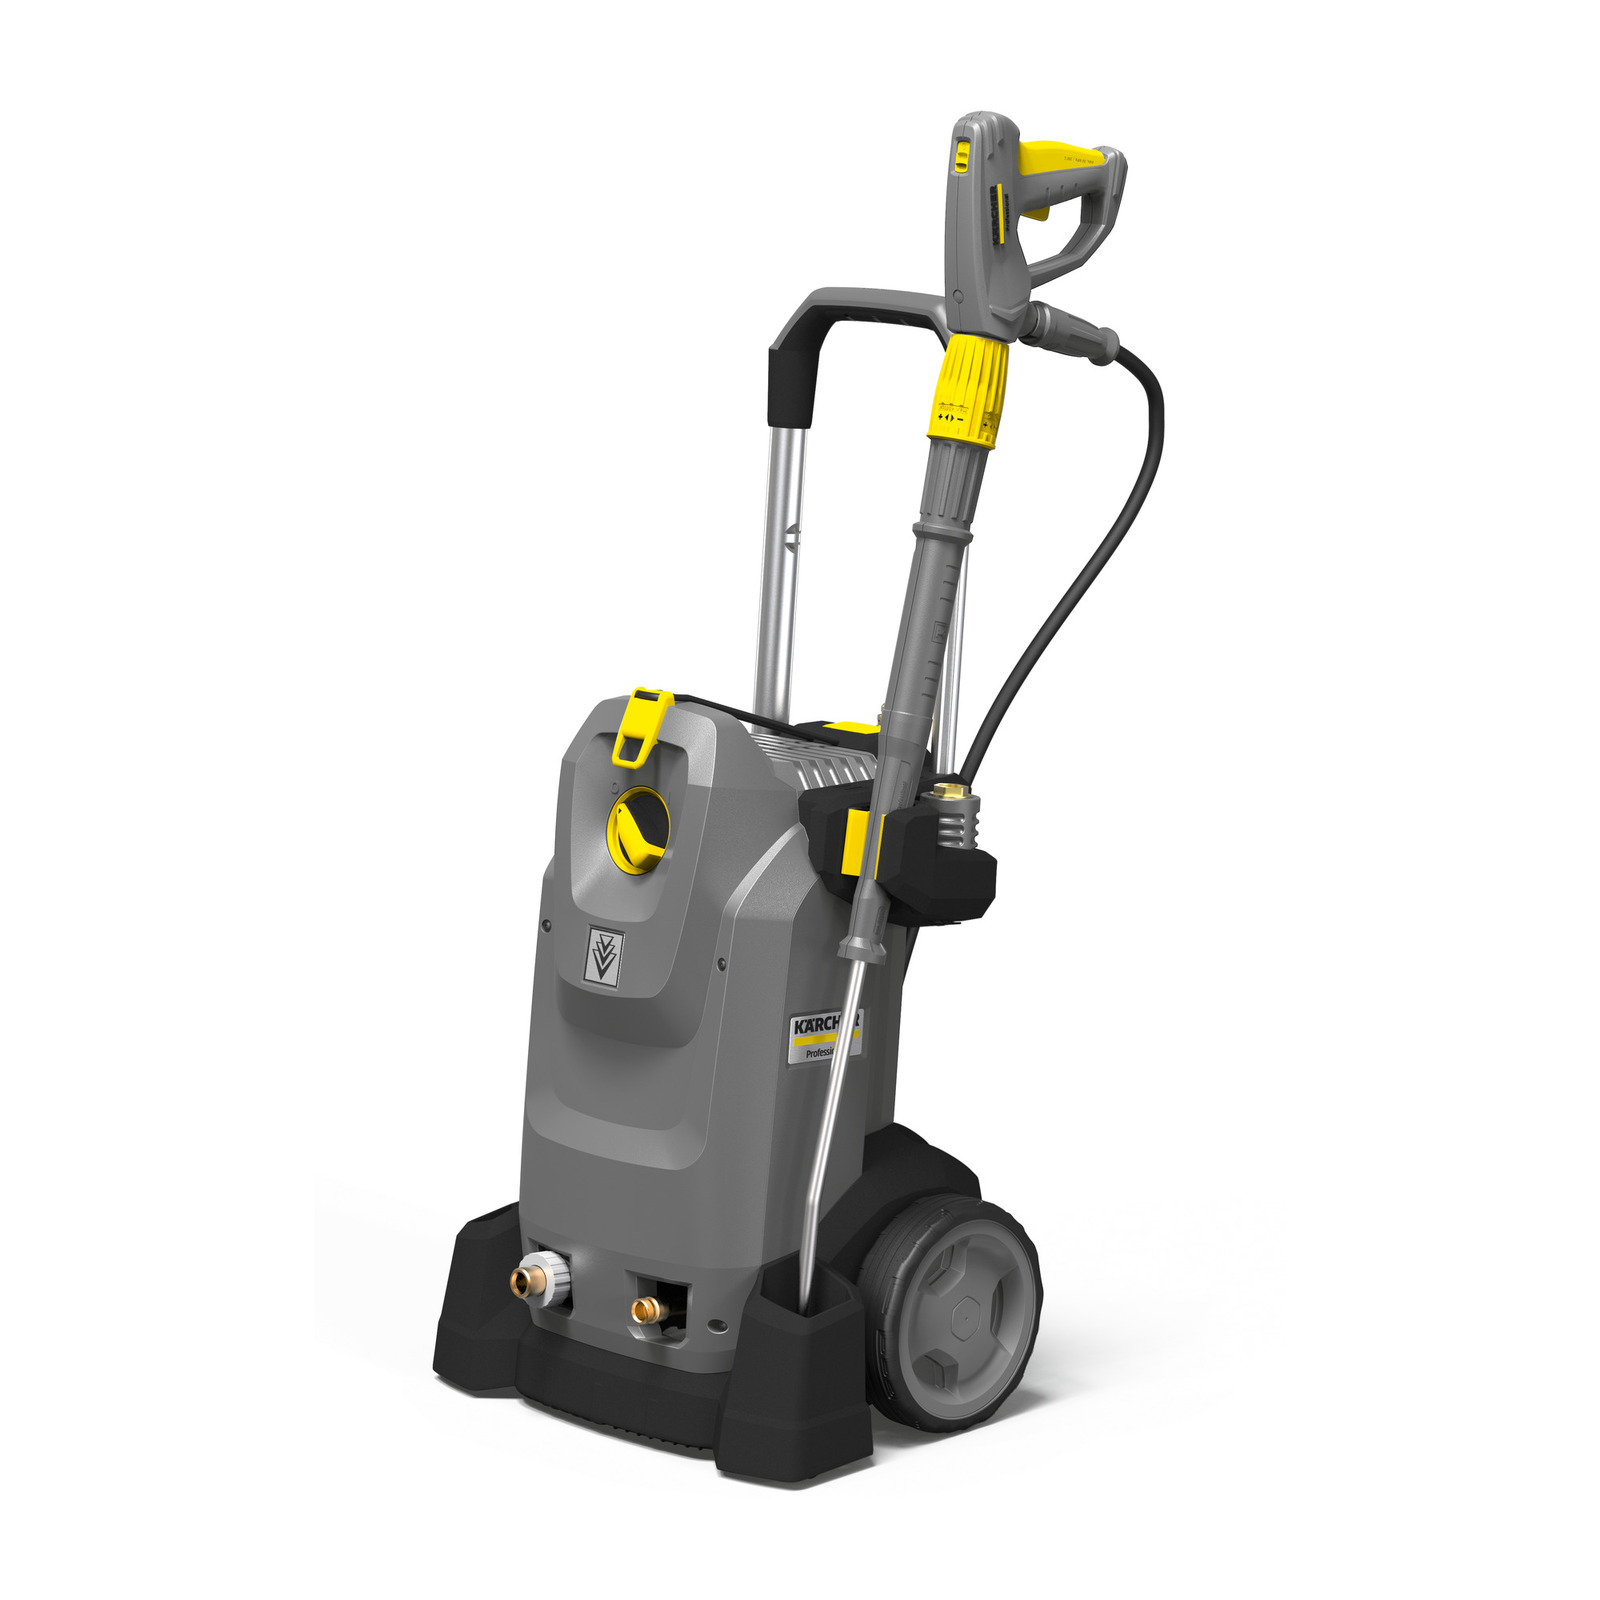 KARCHER - HD 8/18-4 MX Plus